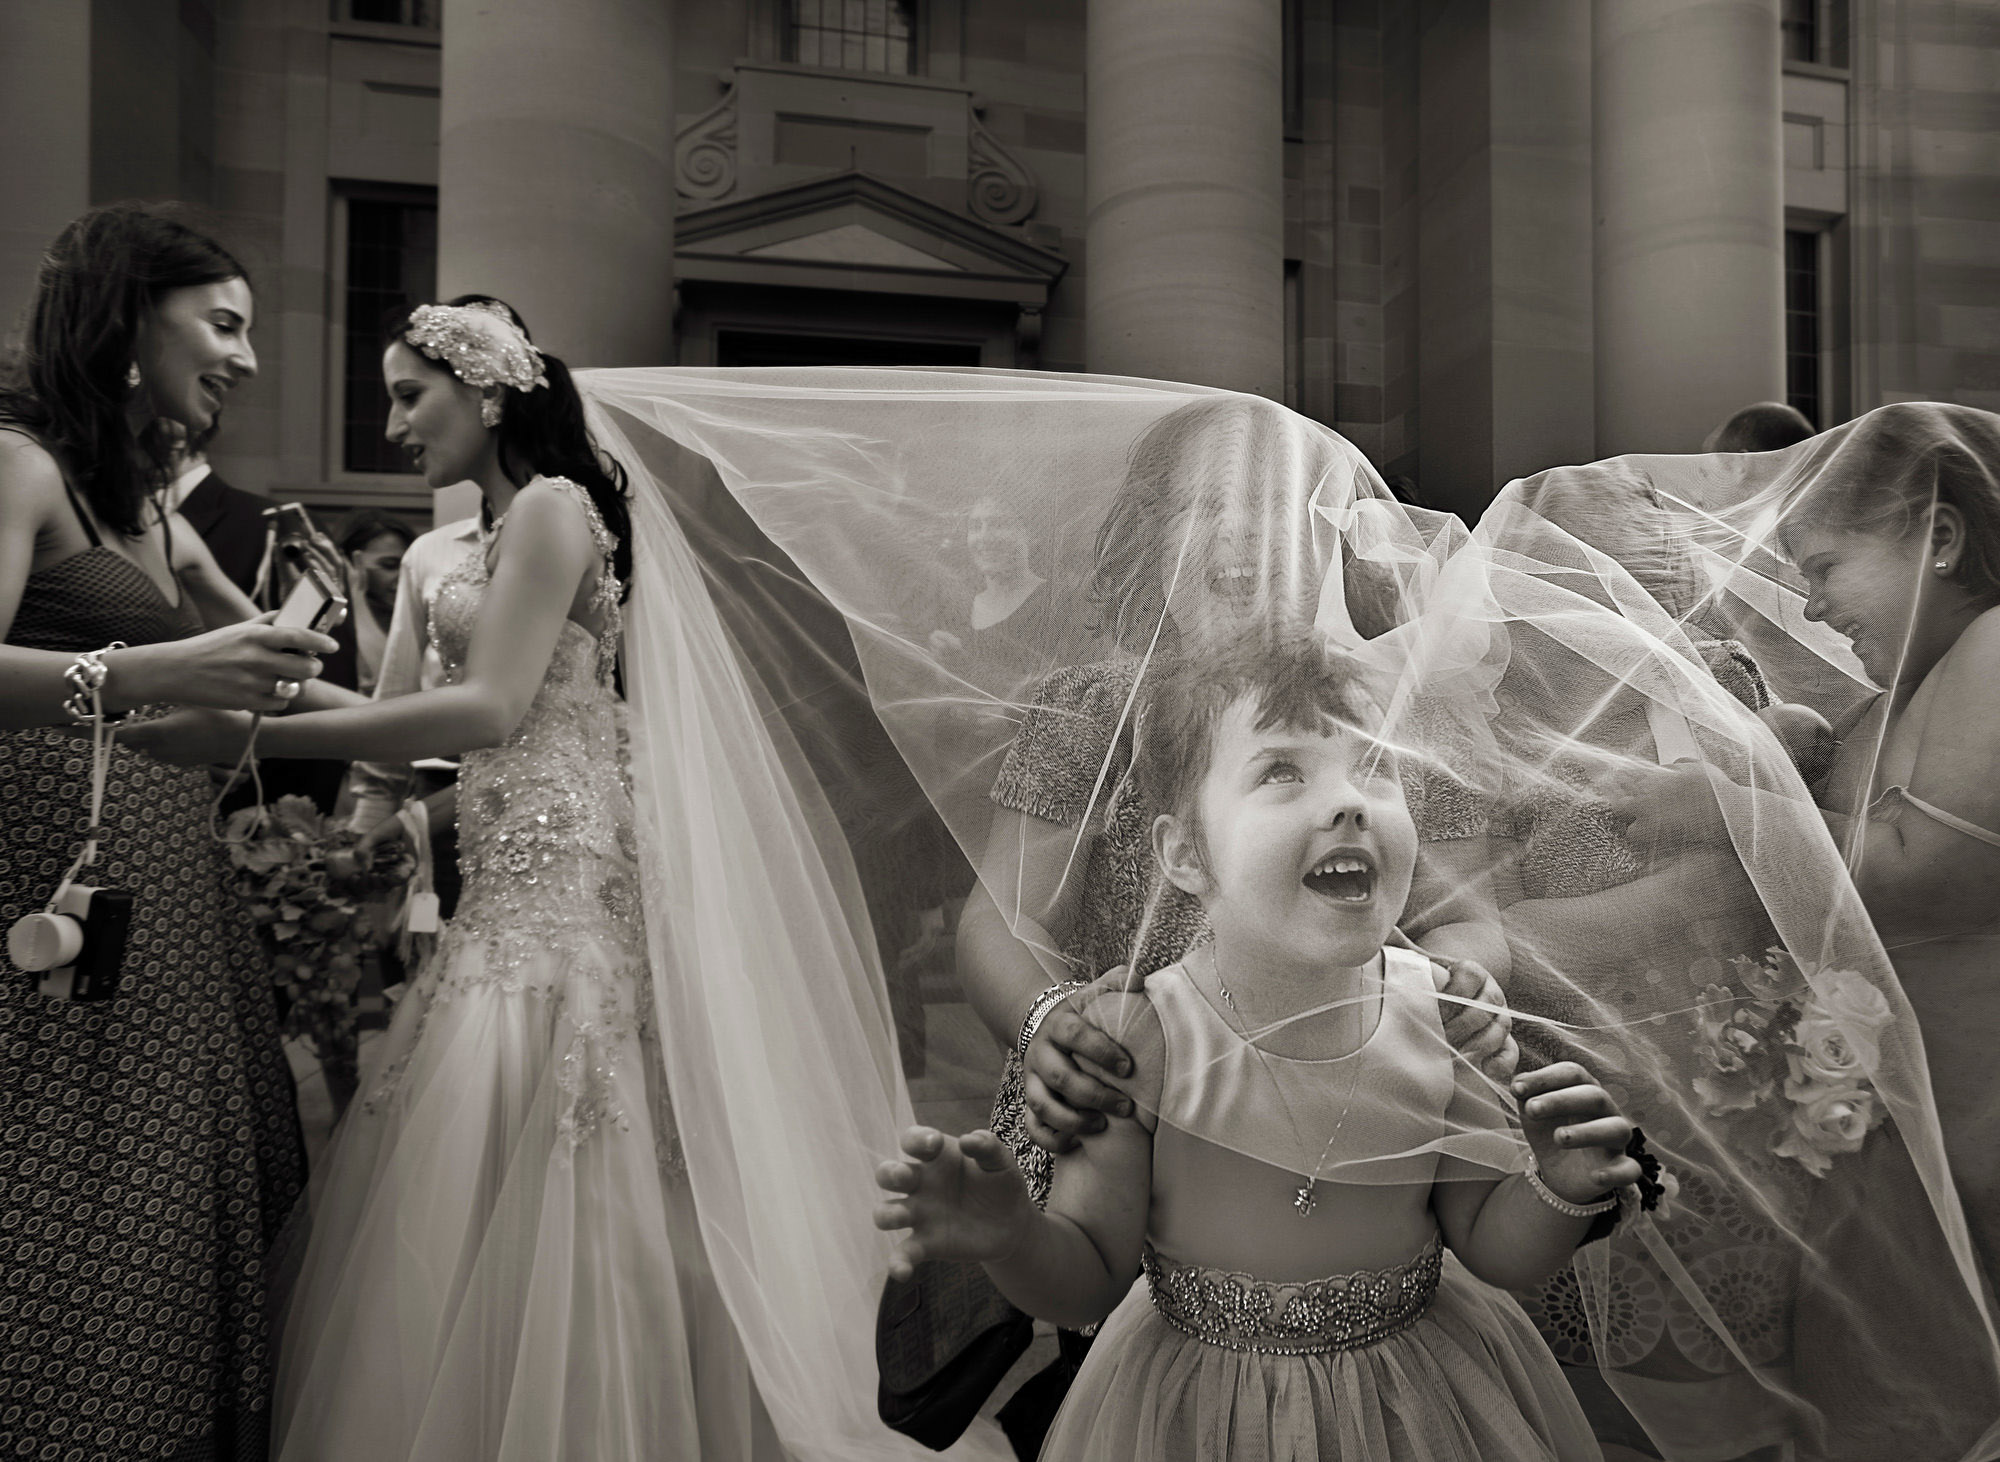 Little girl pokes nose into veil by Jerry Ghionis